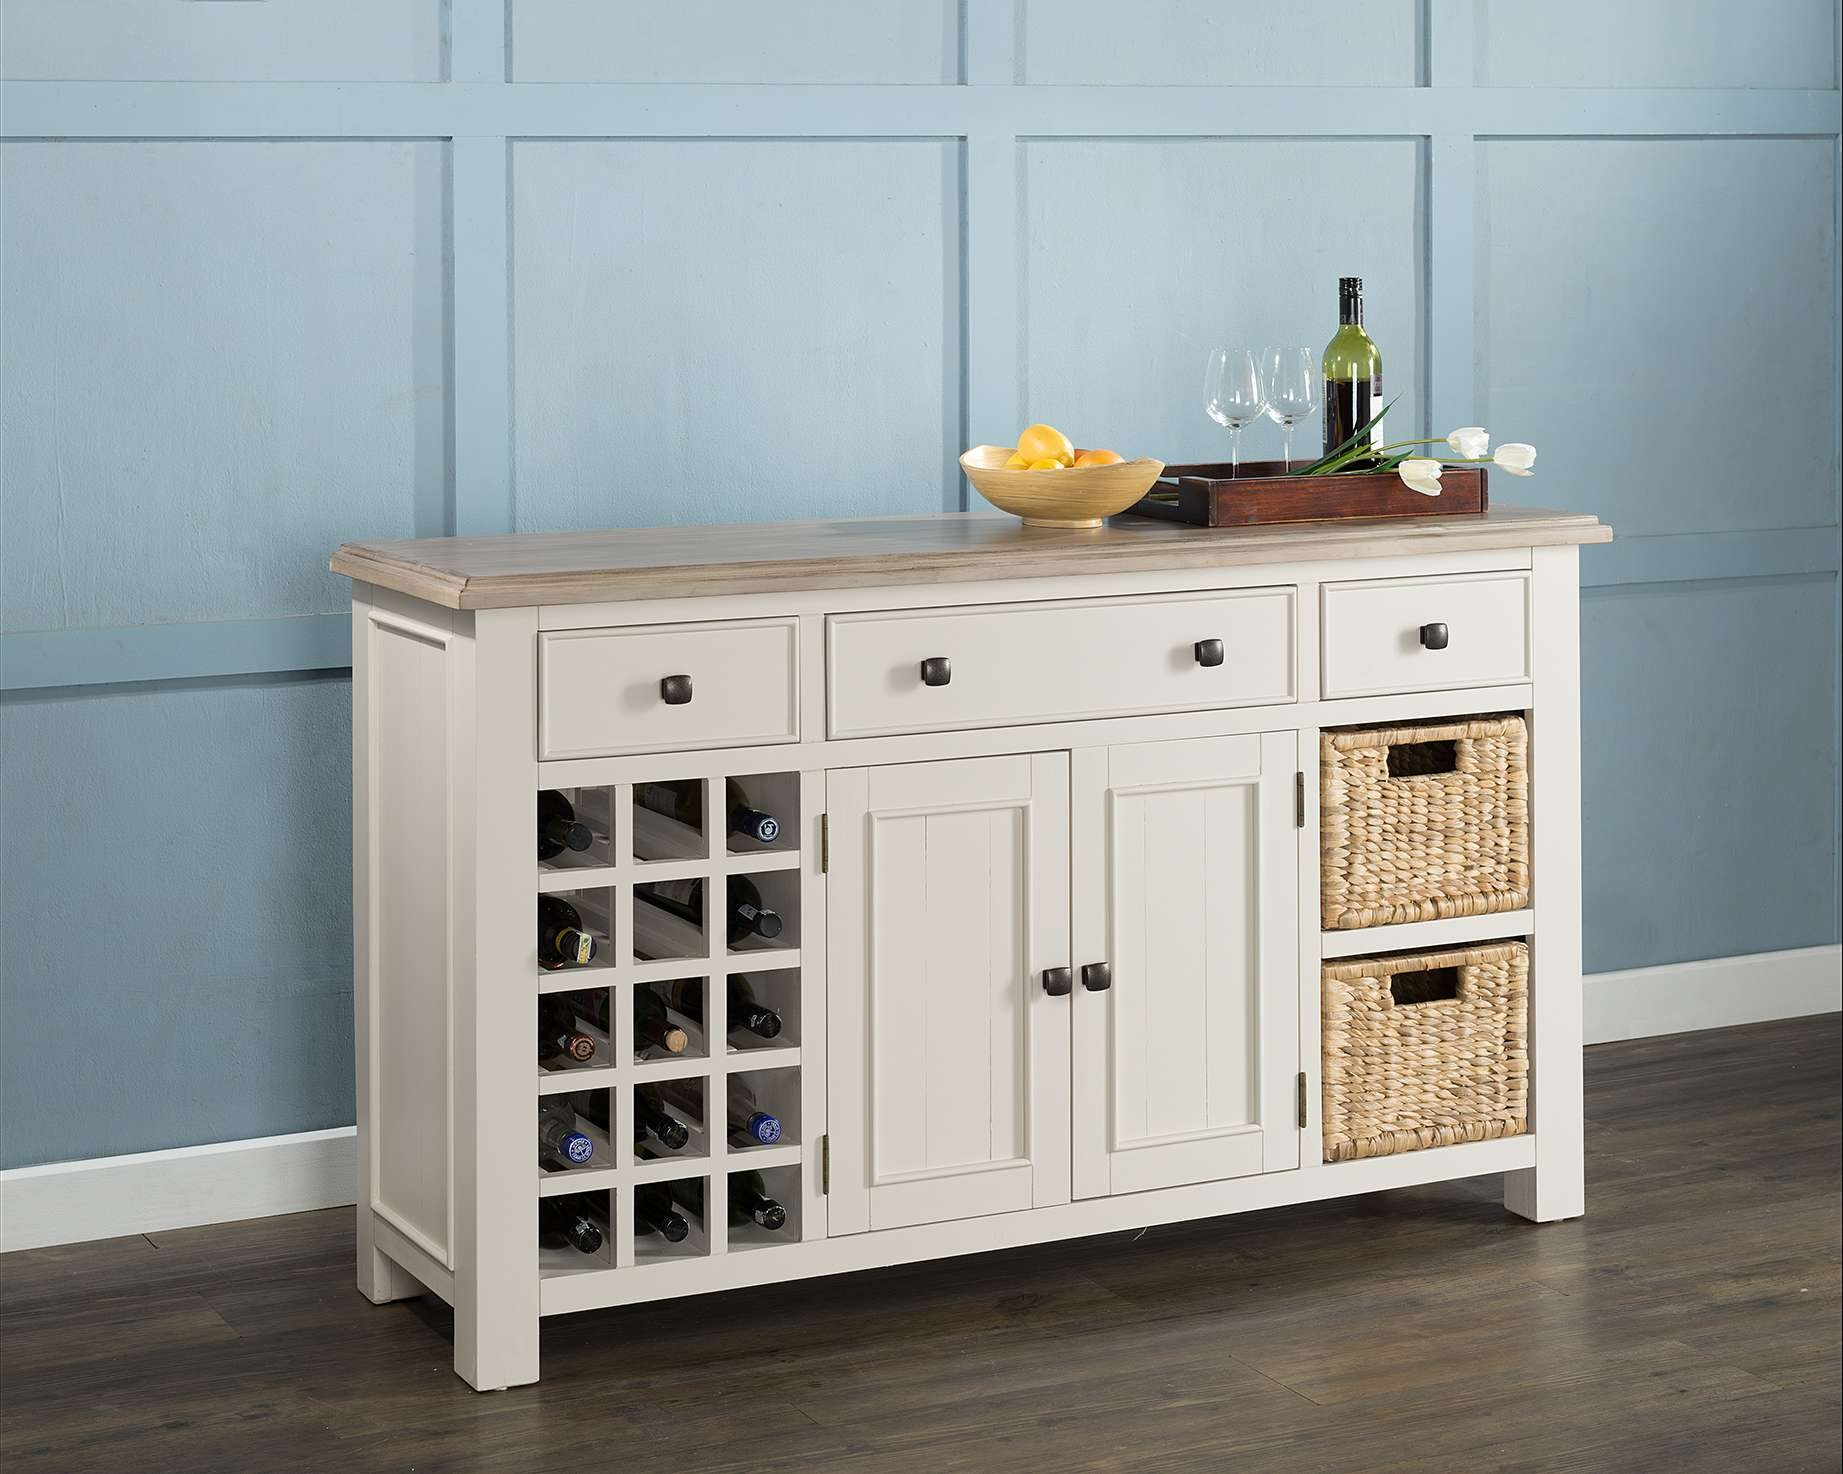 Large Sideboard With Wine Rack & Baskets (54 15) – Papaya Trading Inside Wine Sideboards (View 2 of 20)